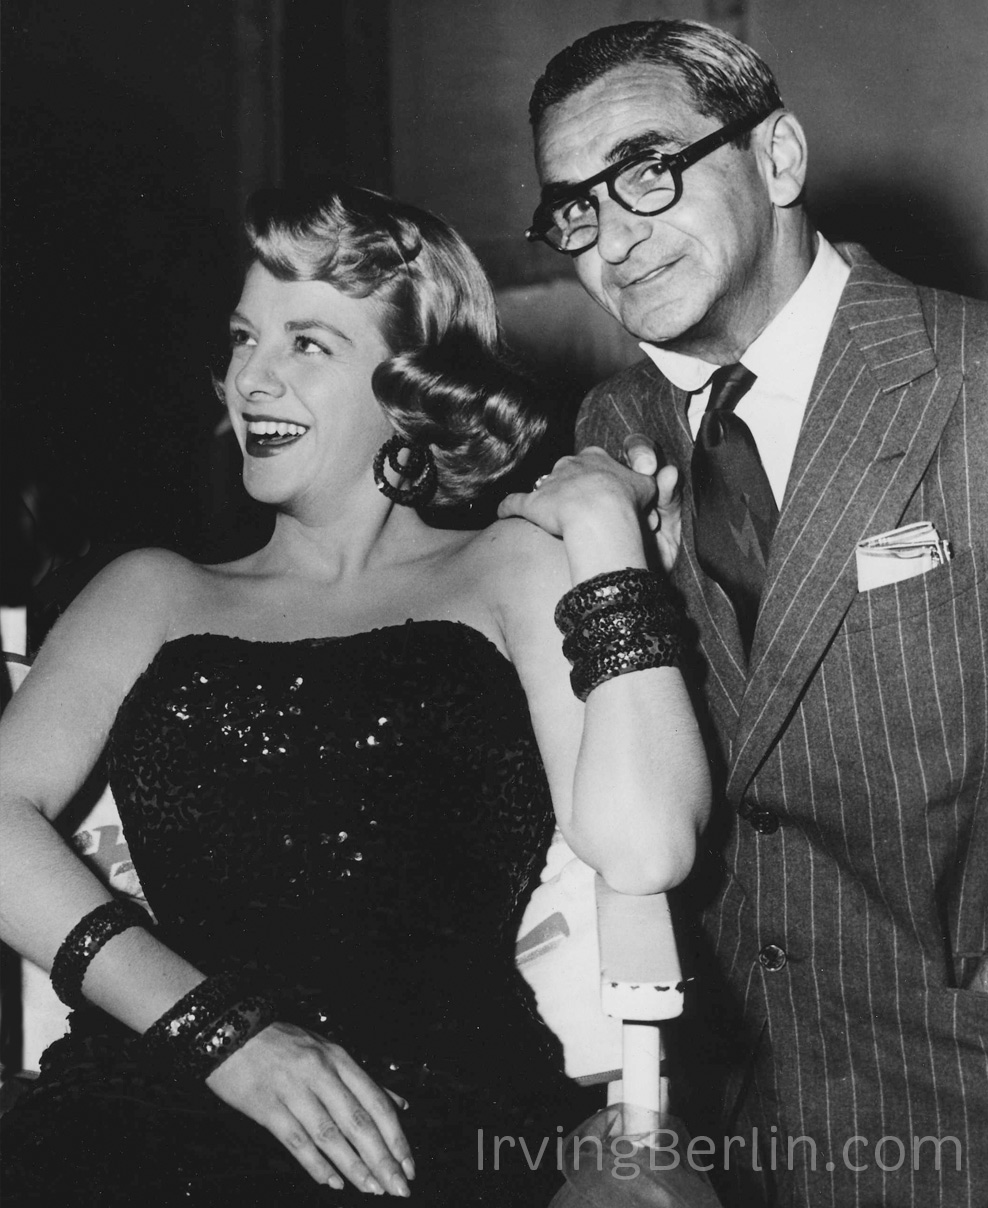 Irving Berlin with Rosemary Clooney